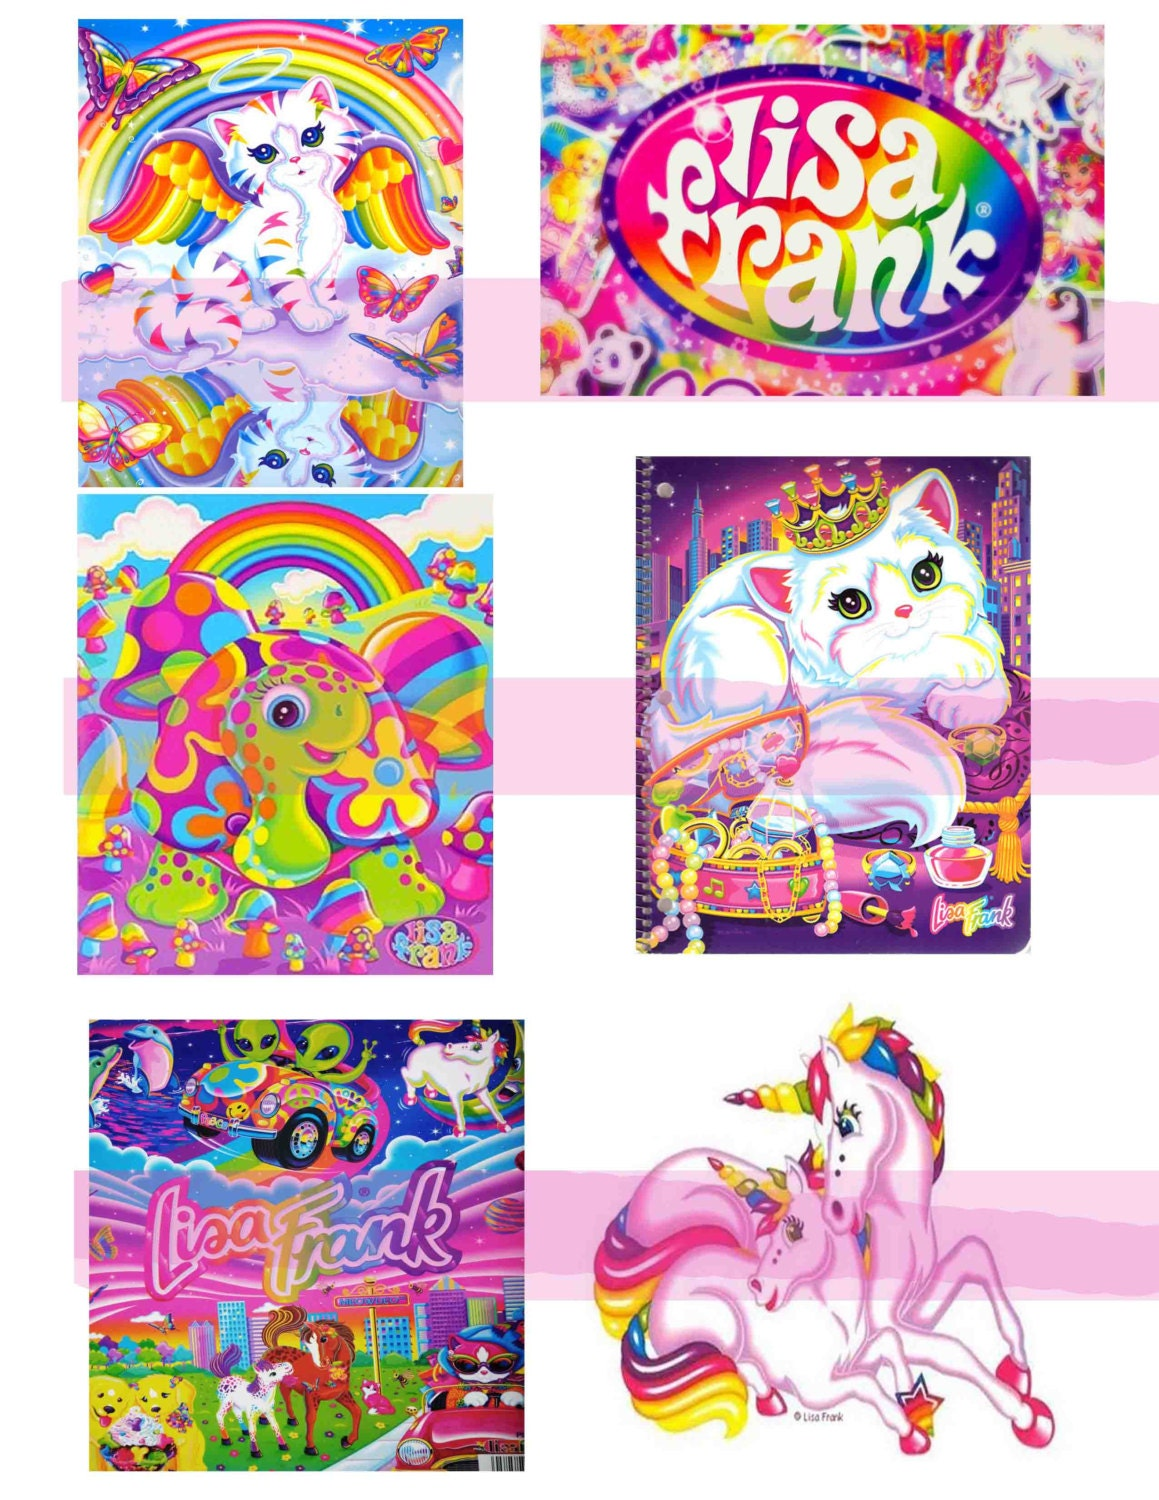 Lisa Frank Shrinky Dinks Sheets 8 5x11 Sheet By Urdesigns